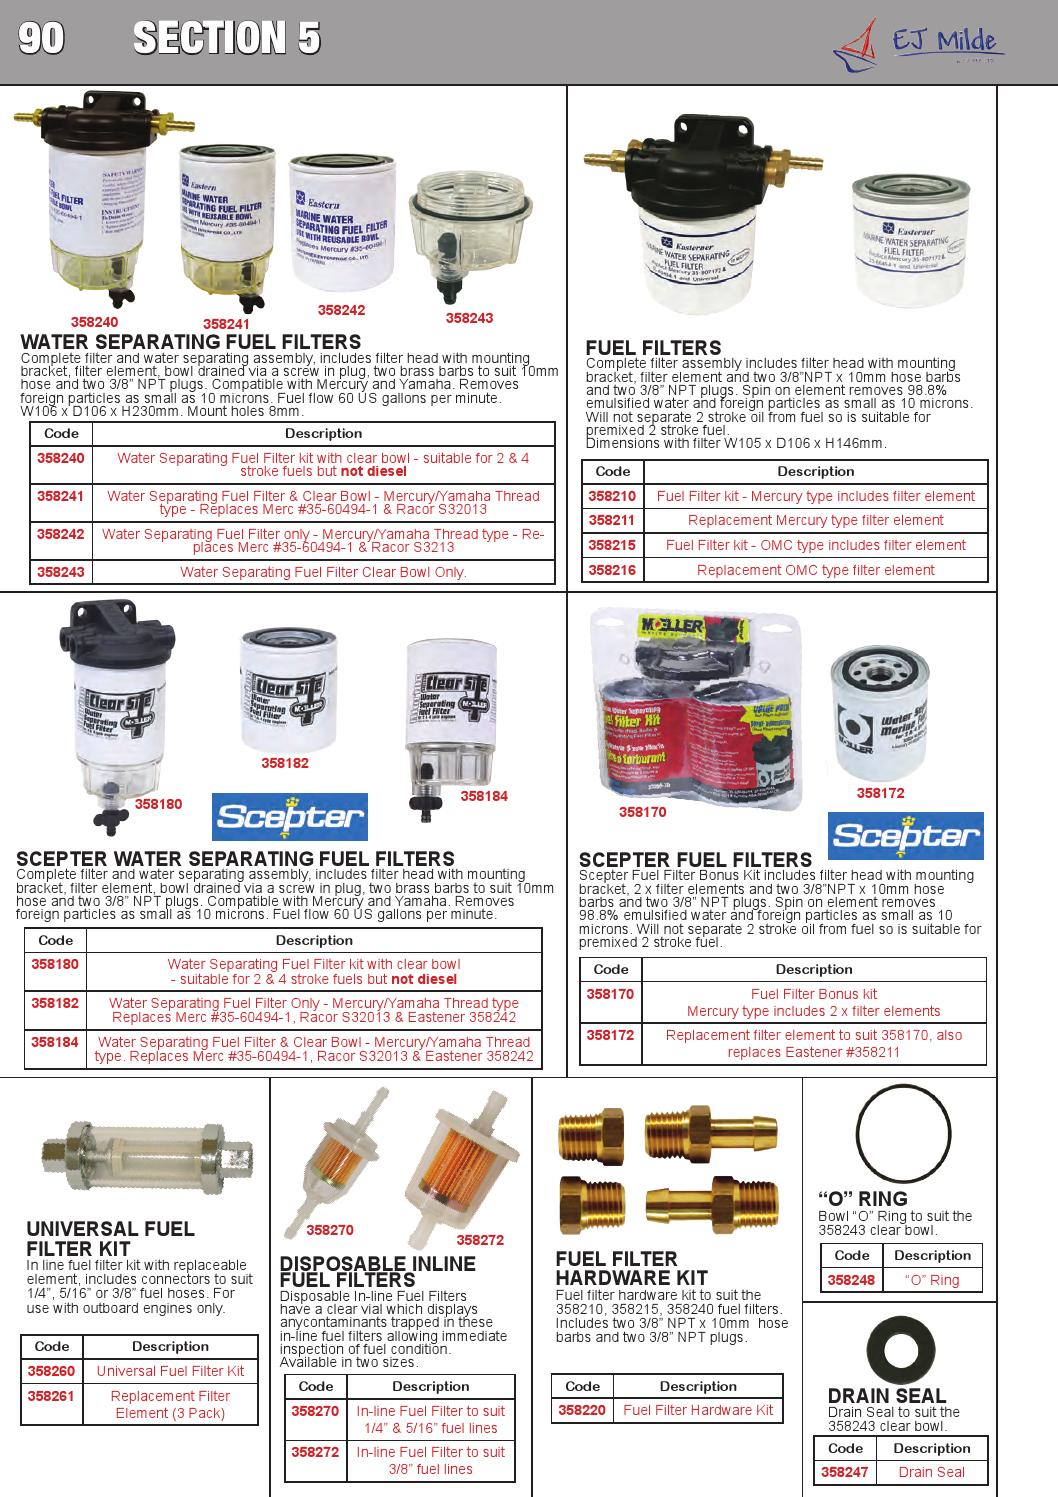 Ej Milde Product Catalogue 2014 By Co Pty Ltd Issuu Yamaha 10 Micron Fuel Filter